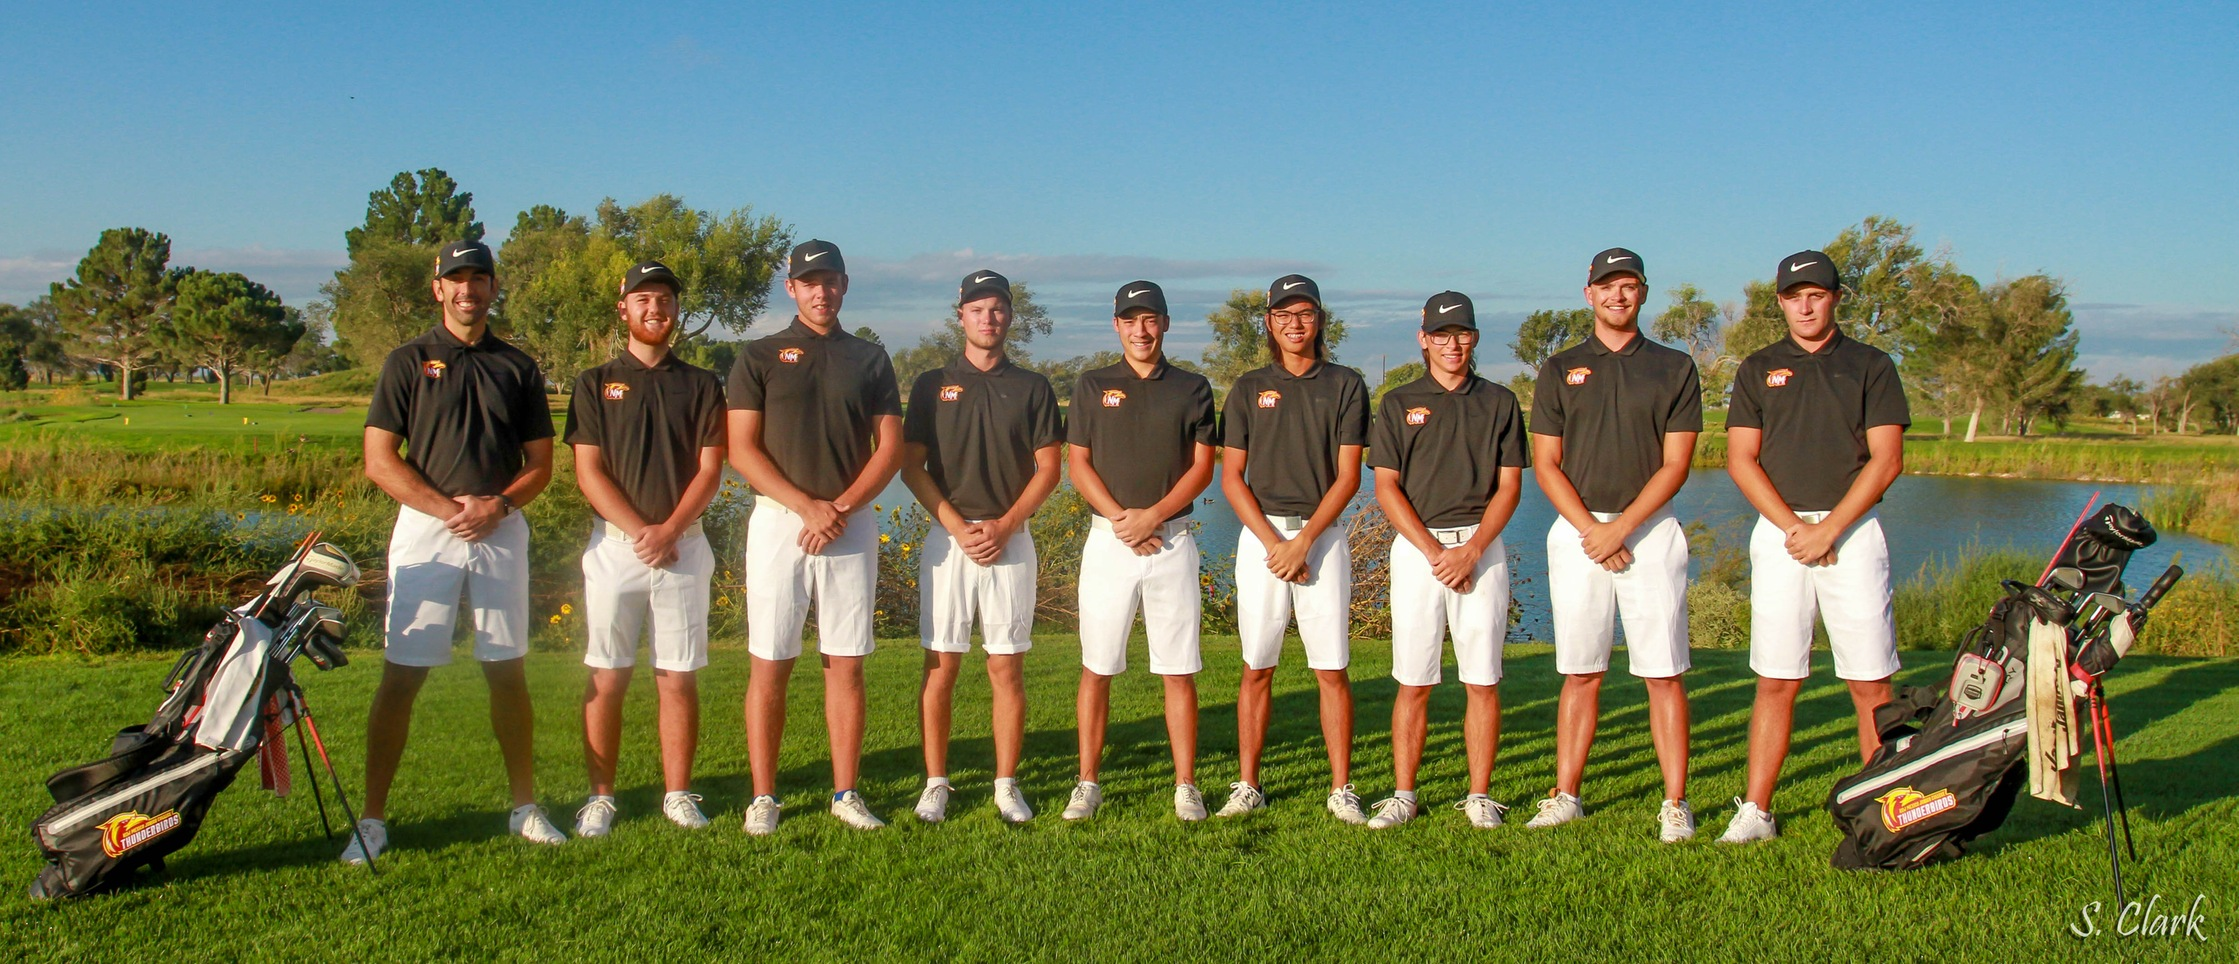 NMJC Golf Ranked #2 in the Golf Week Ranking